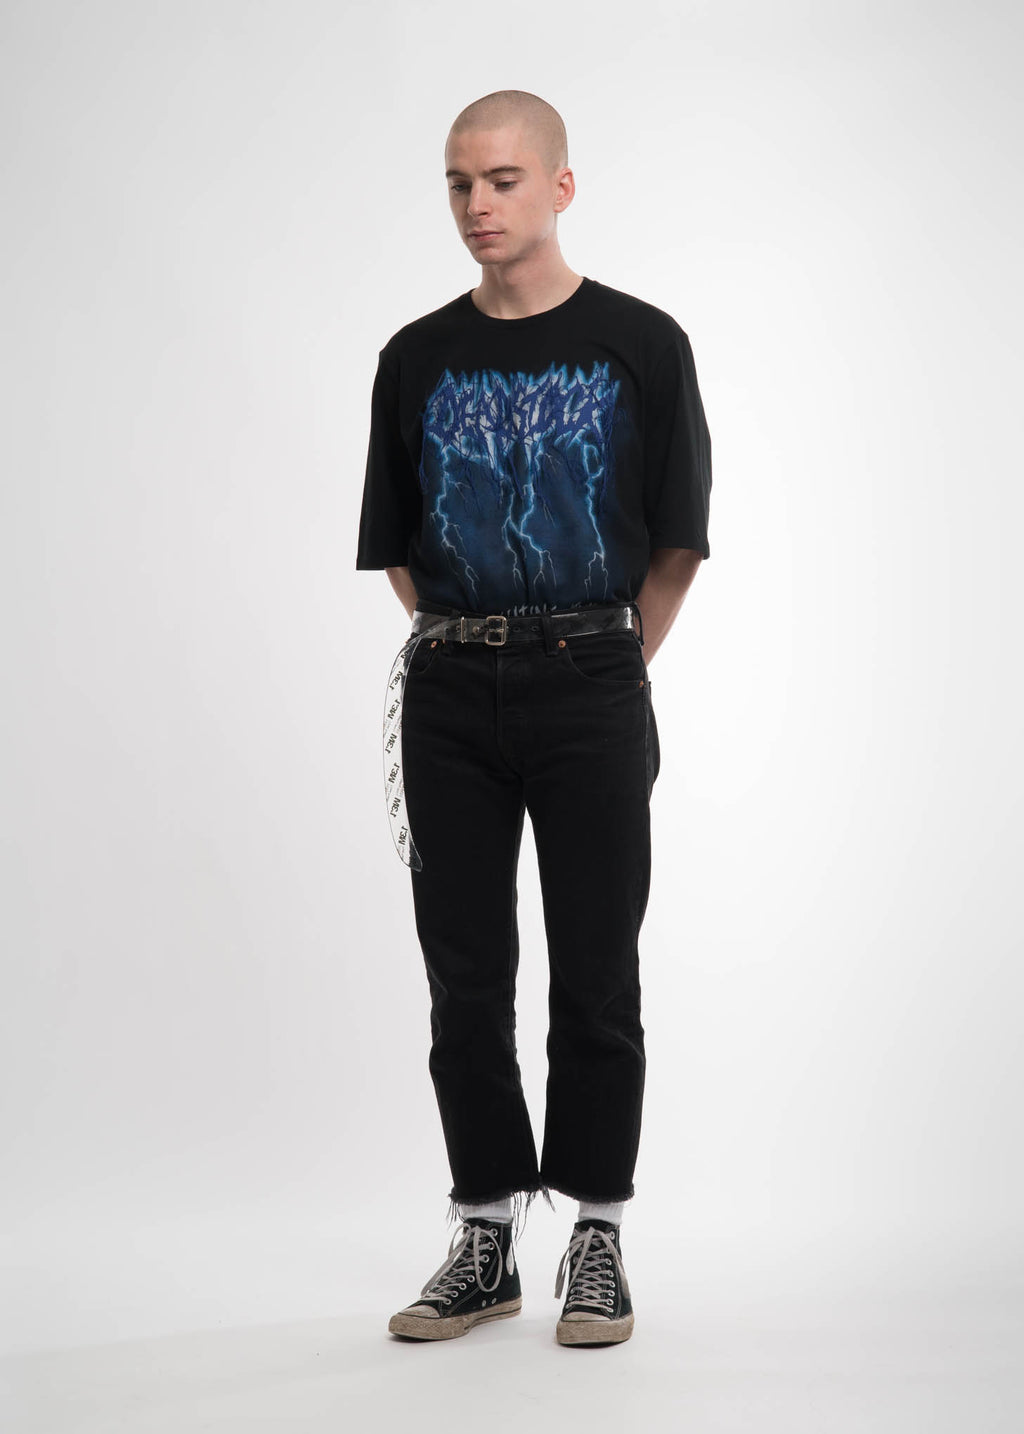 Doublet, Black Deadstock Embroidery T-Shirt, 017 Shop